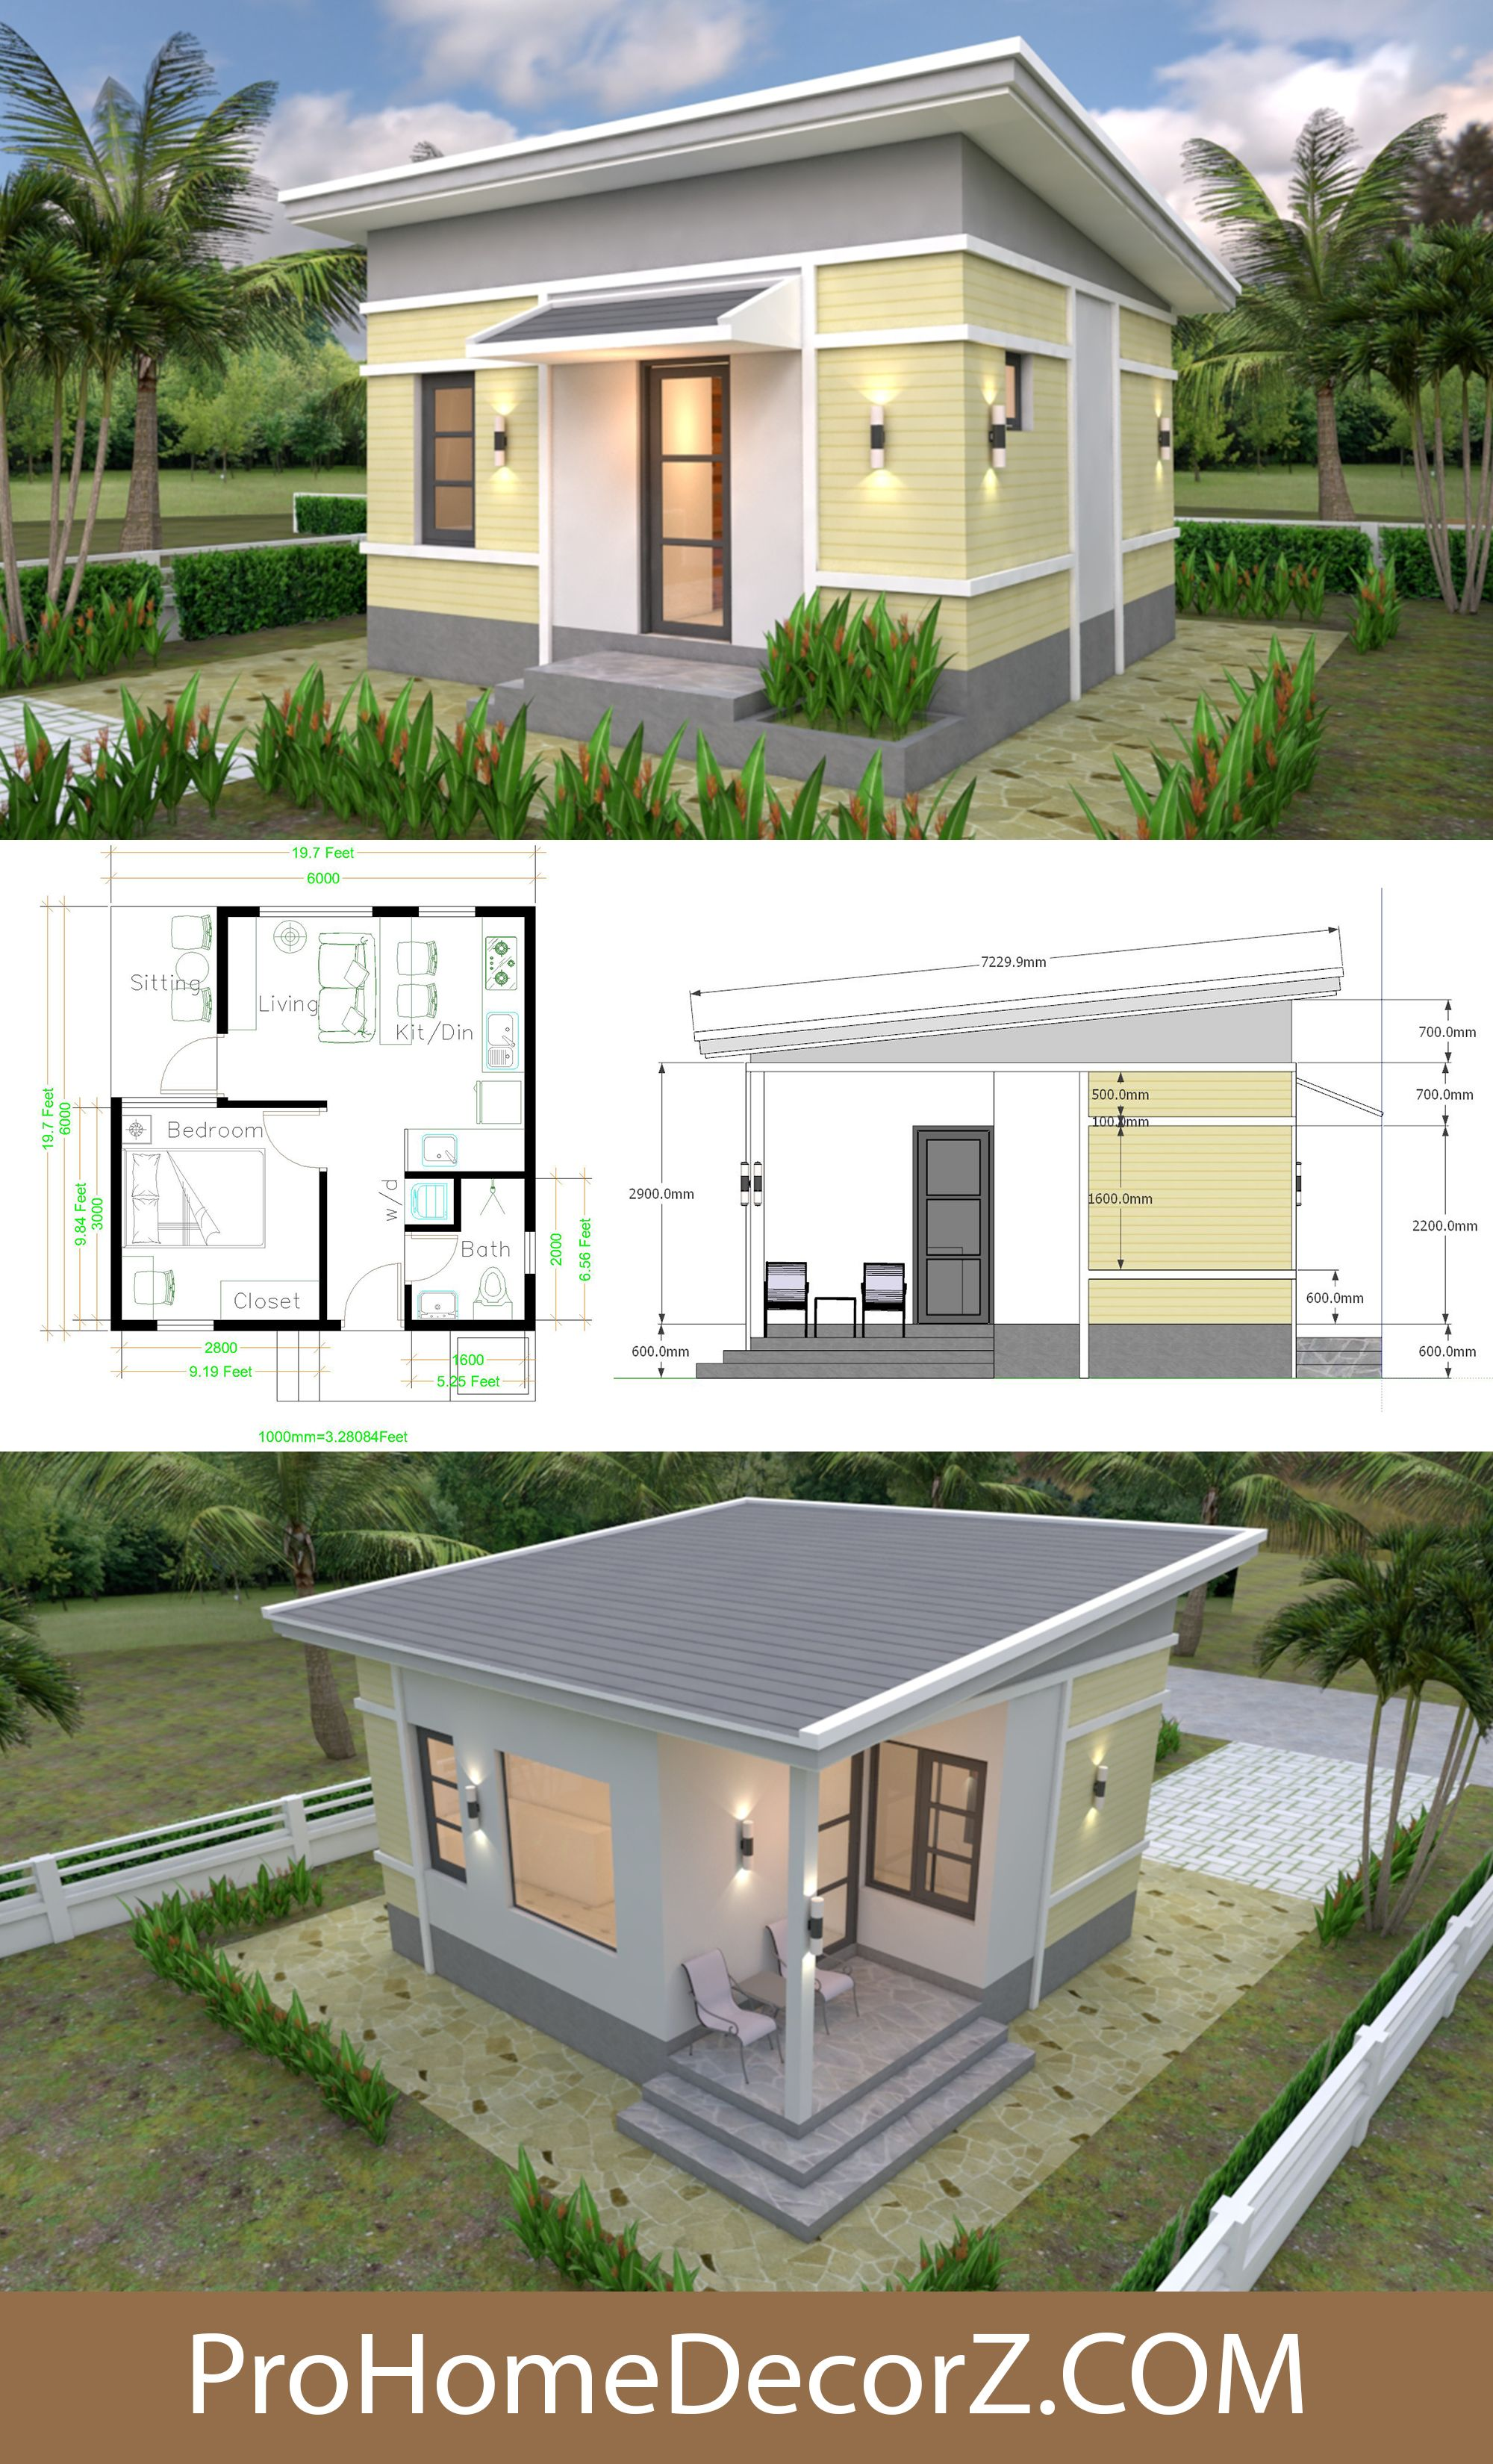 Small Bungalow 6x6 With Shed Roof Small Bungalow Small House Design House Roof